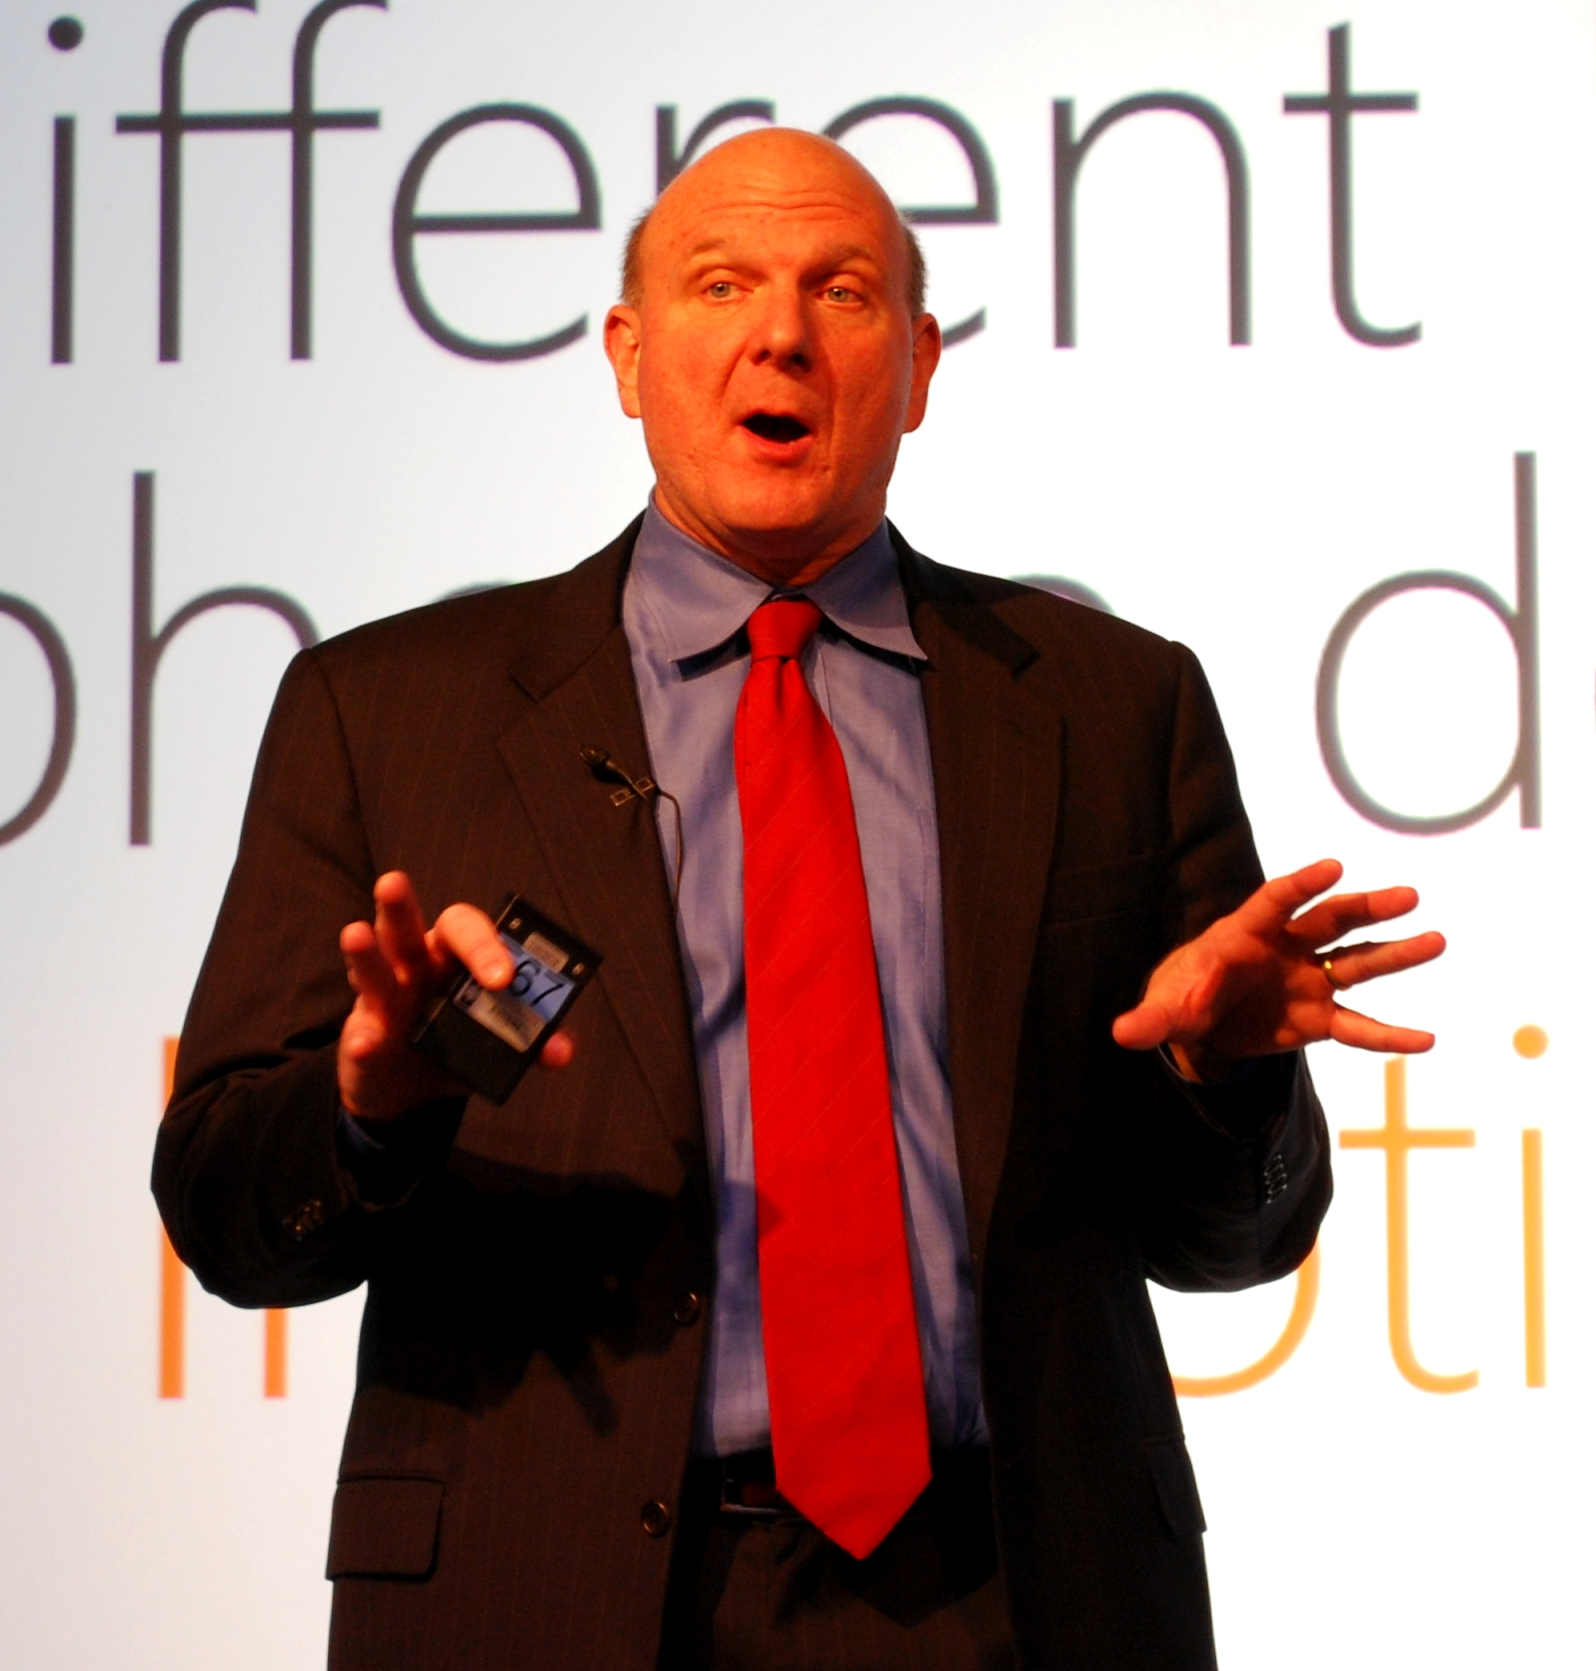 Steve Ballmer at Mobile World Congress 2010.